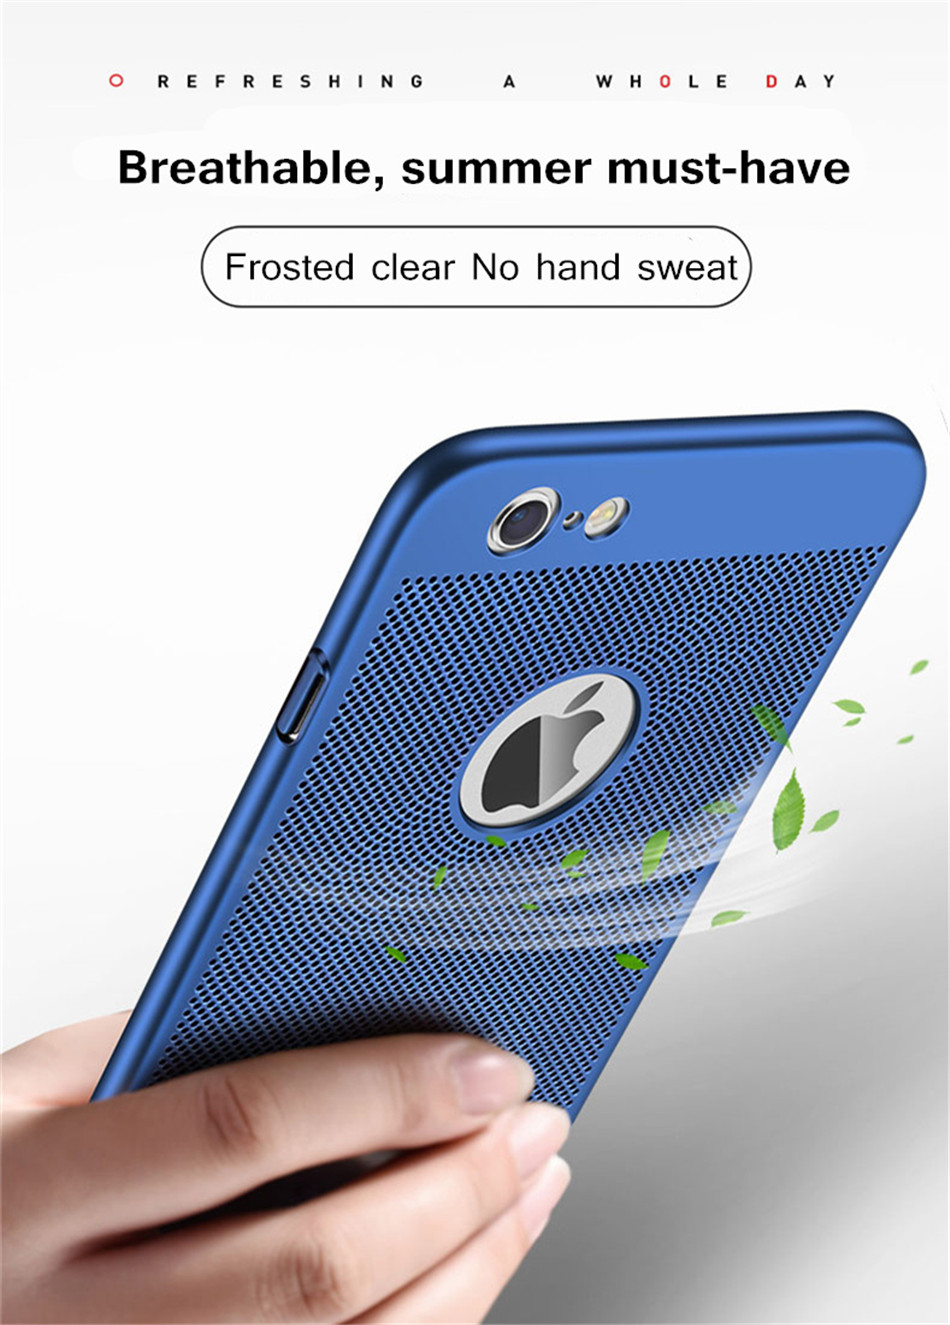 HTB1SB5ifMn.PuJjSZFkq6A lpXaG - Ultra Slim Phone Case For iPhone 6 6s 7 8 Plus Hollow Heat Dissipation Cases Hard PC For iPhone 5 5S SE Back Cover Coque X S MAX